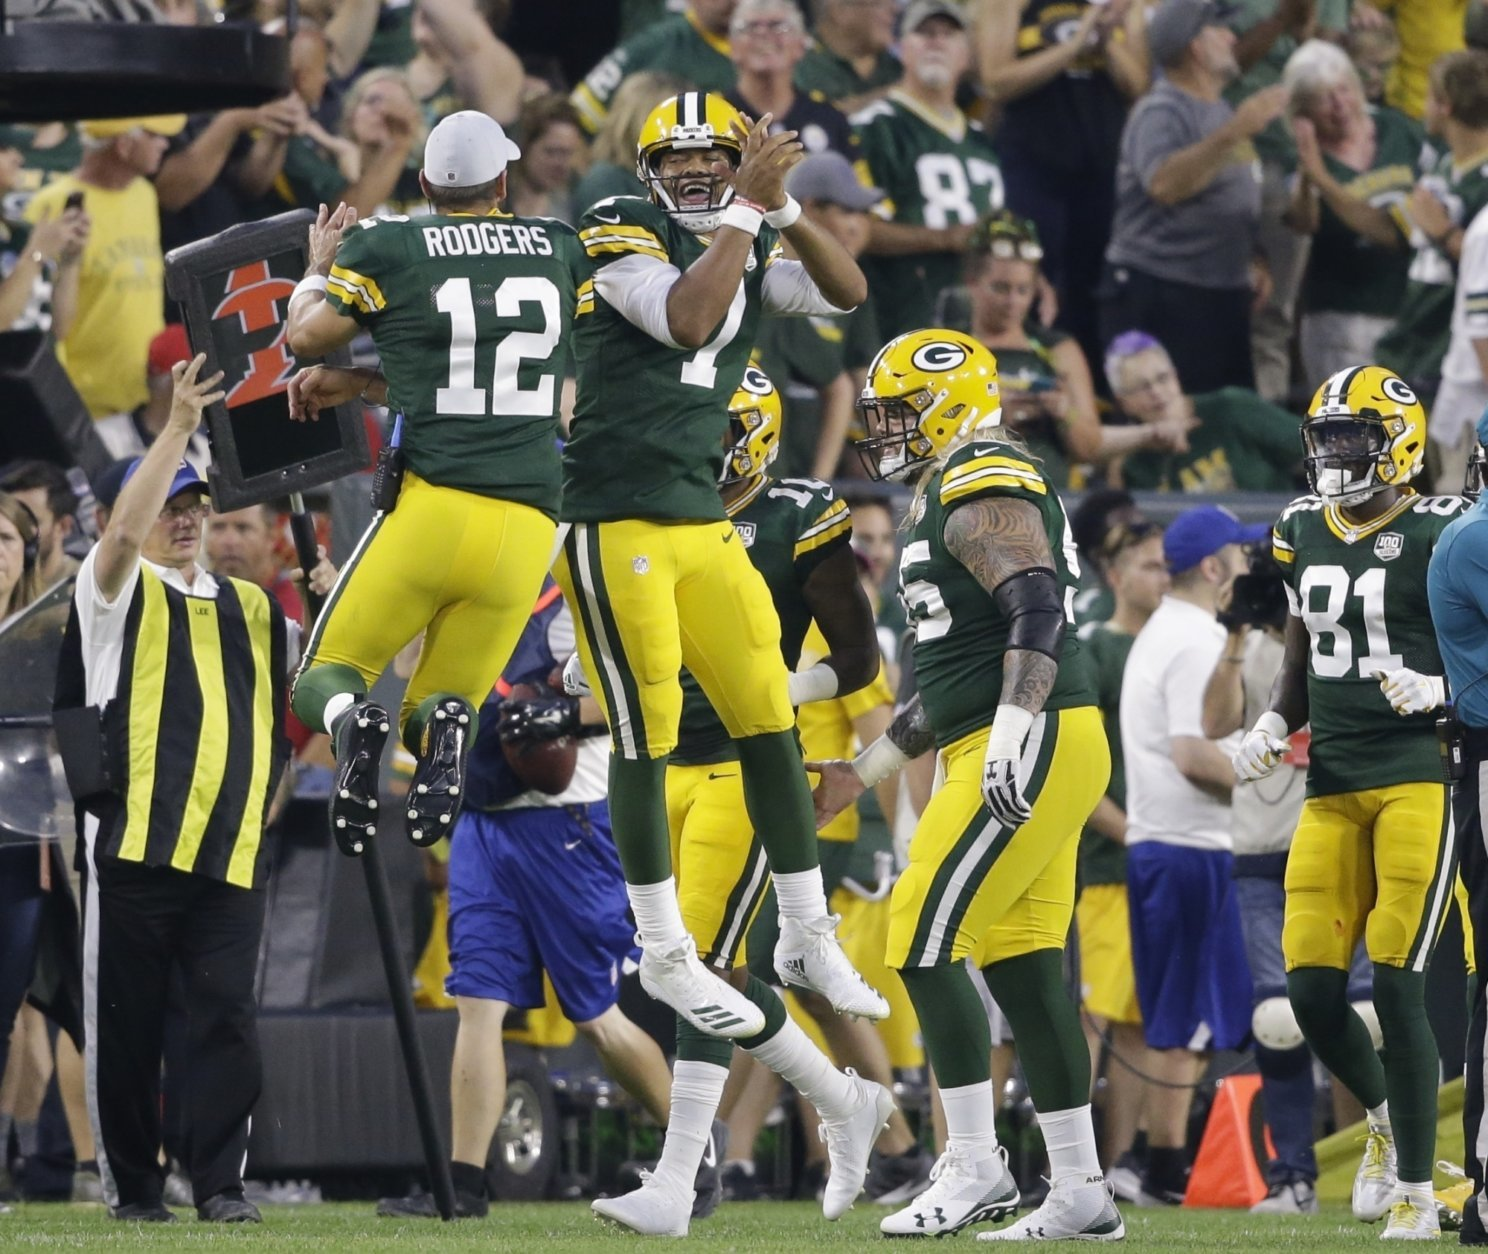 Green Bay Packers' Brett Hundley celebrates his touchdown run with Aaron Rodgers (12) during the first half of a preseason NFL football game against the Pittsburgh Steelers Thursday, Aug. 16, 2018, in Green Bay, Wis. (AP Photo/Jeffrey Phelps)